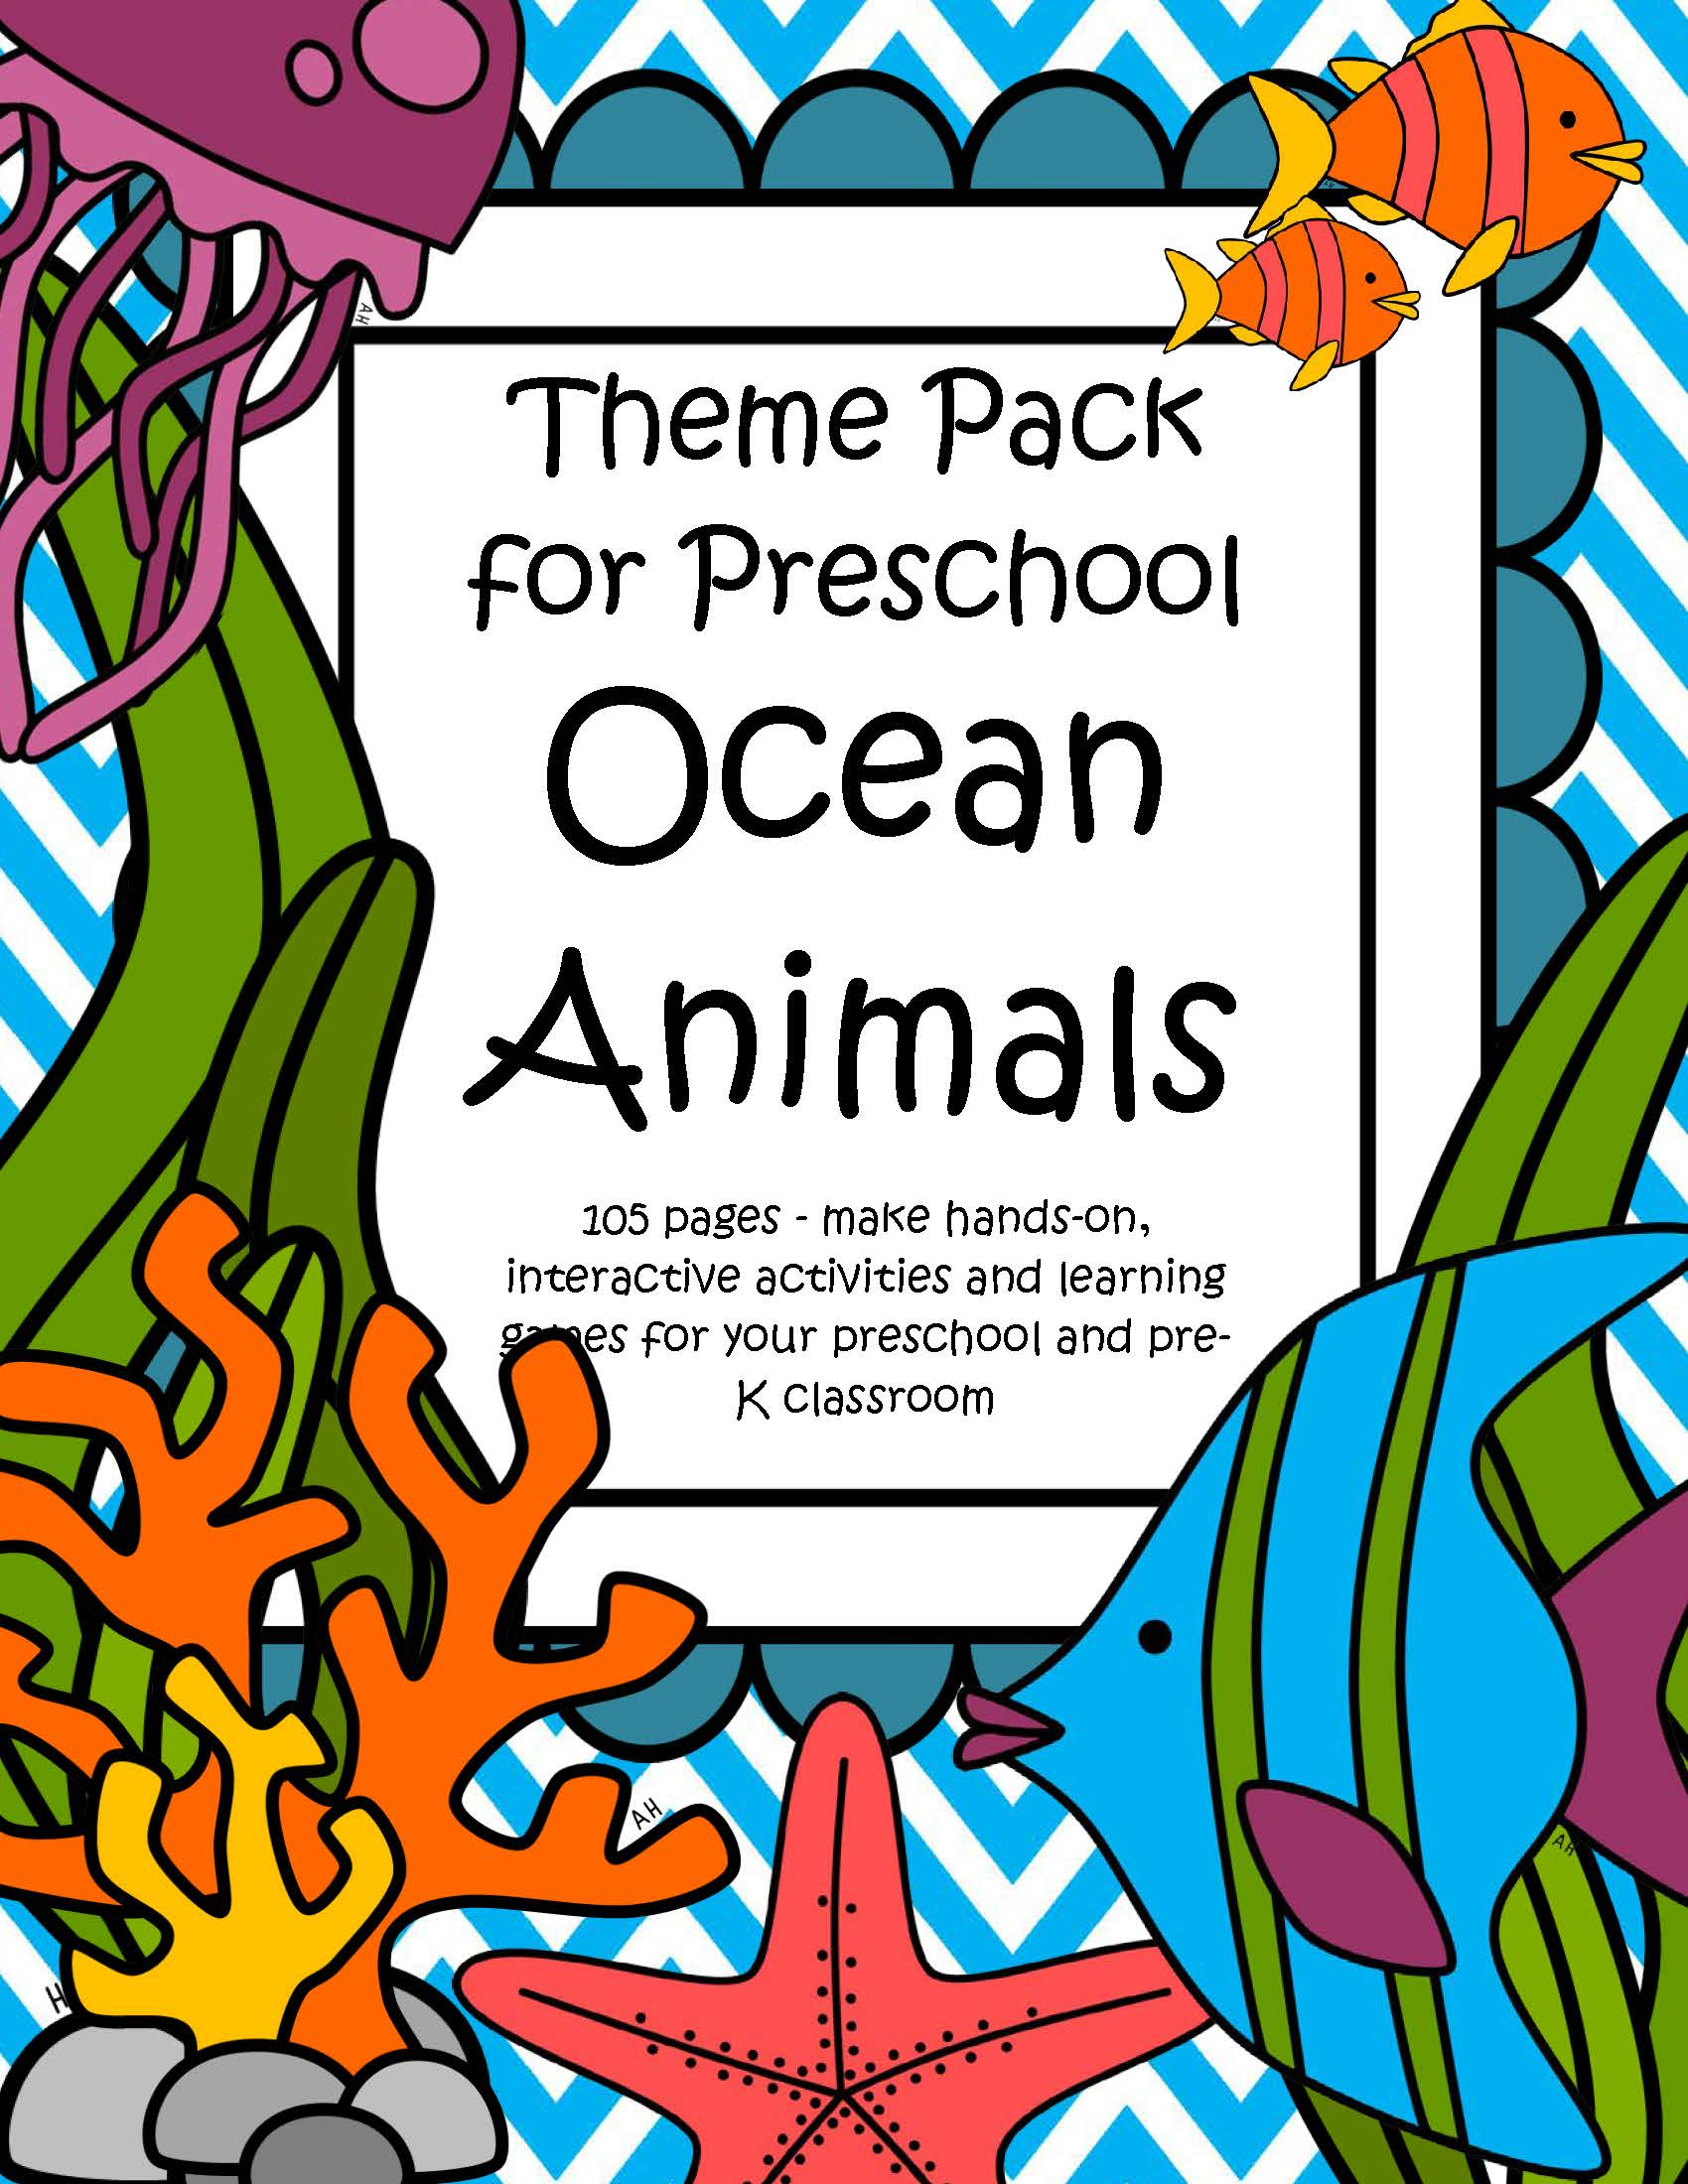 Ocean Animals Theme Pack For Preschool